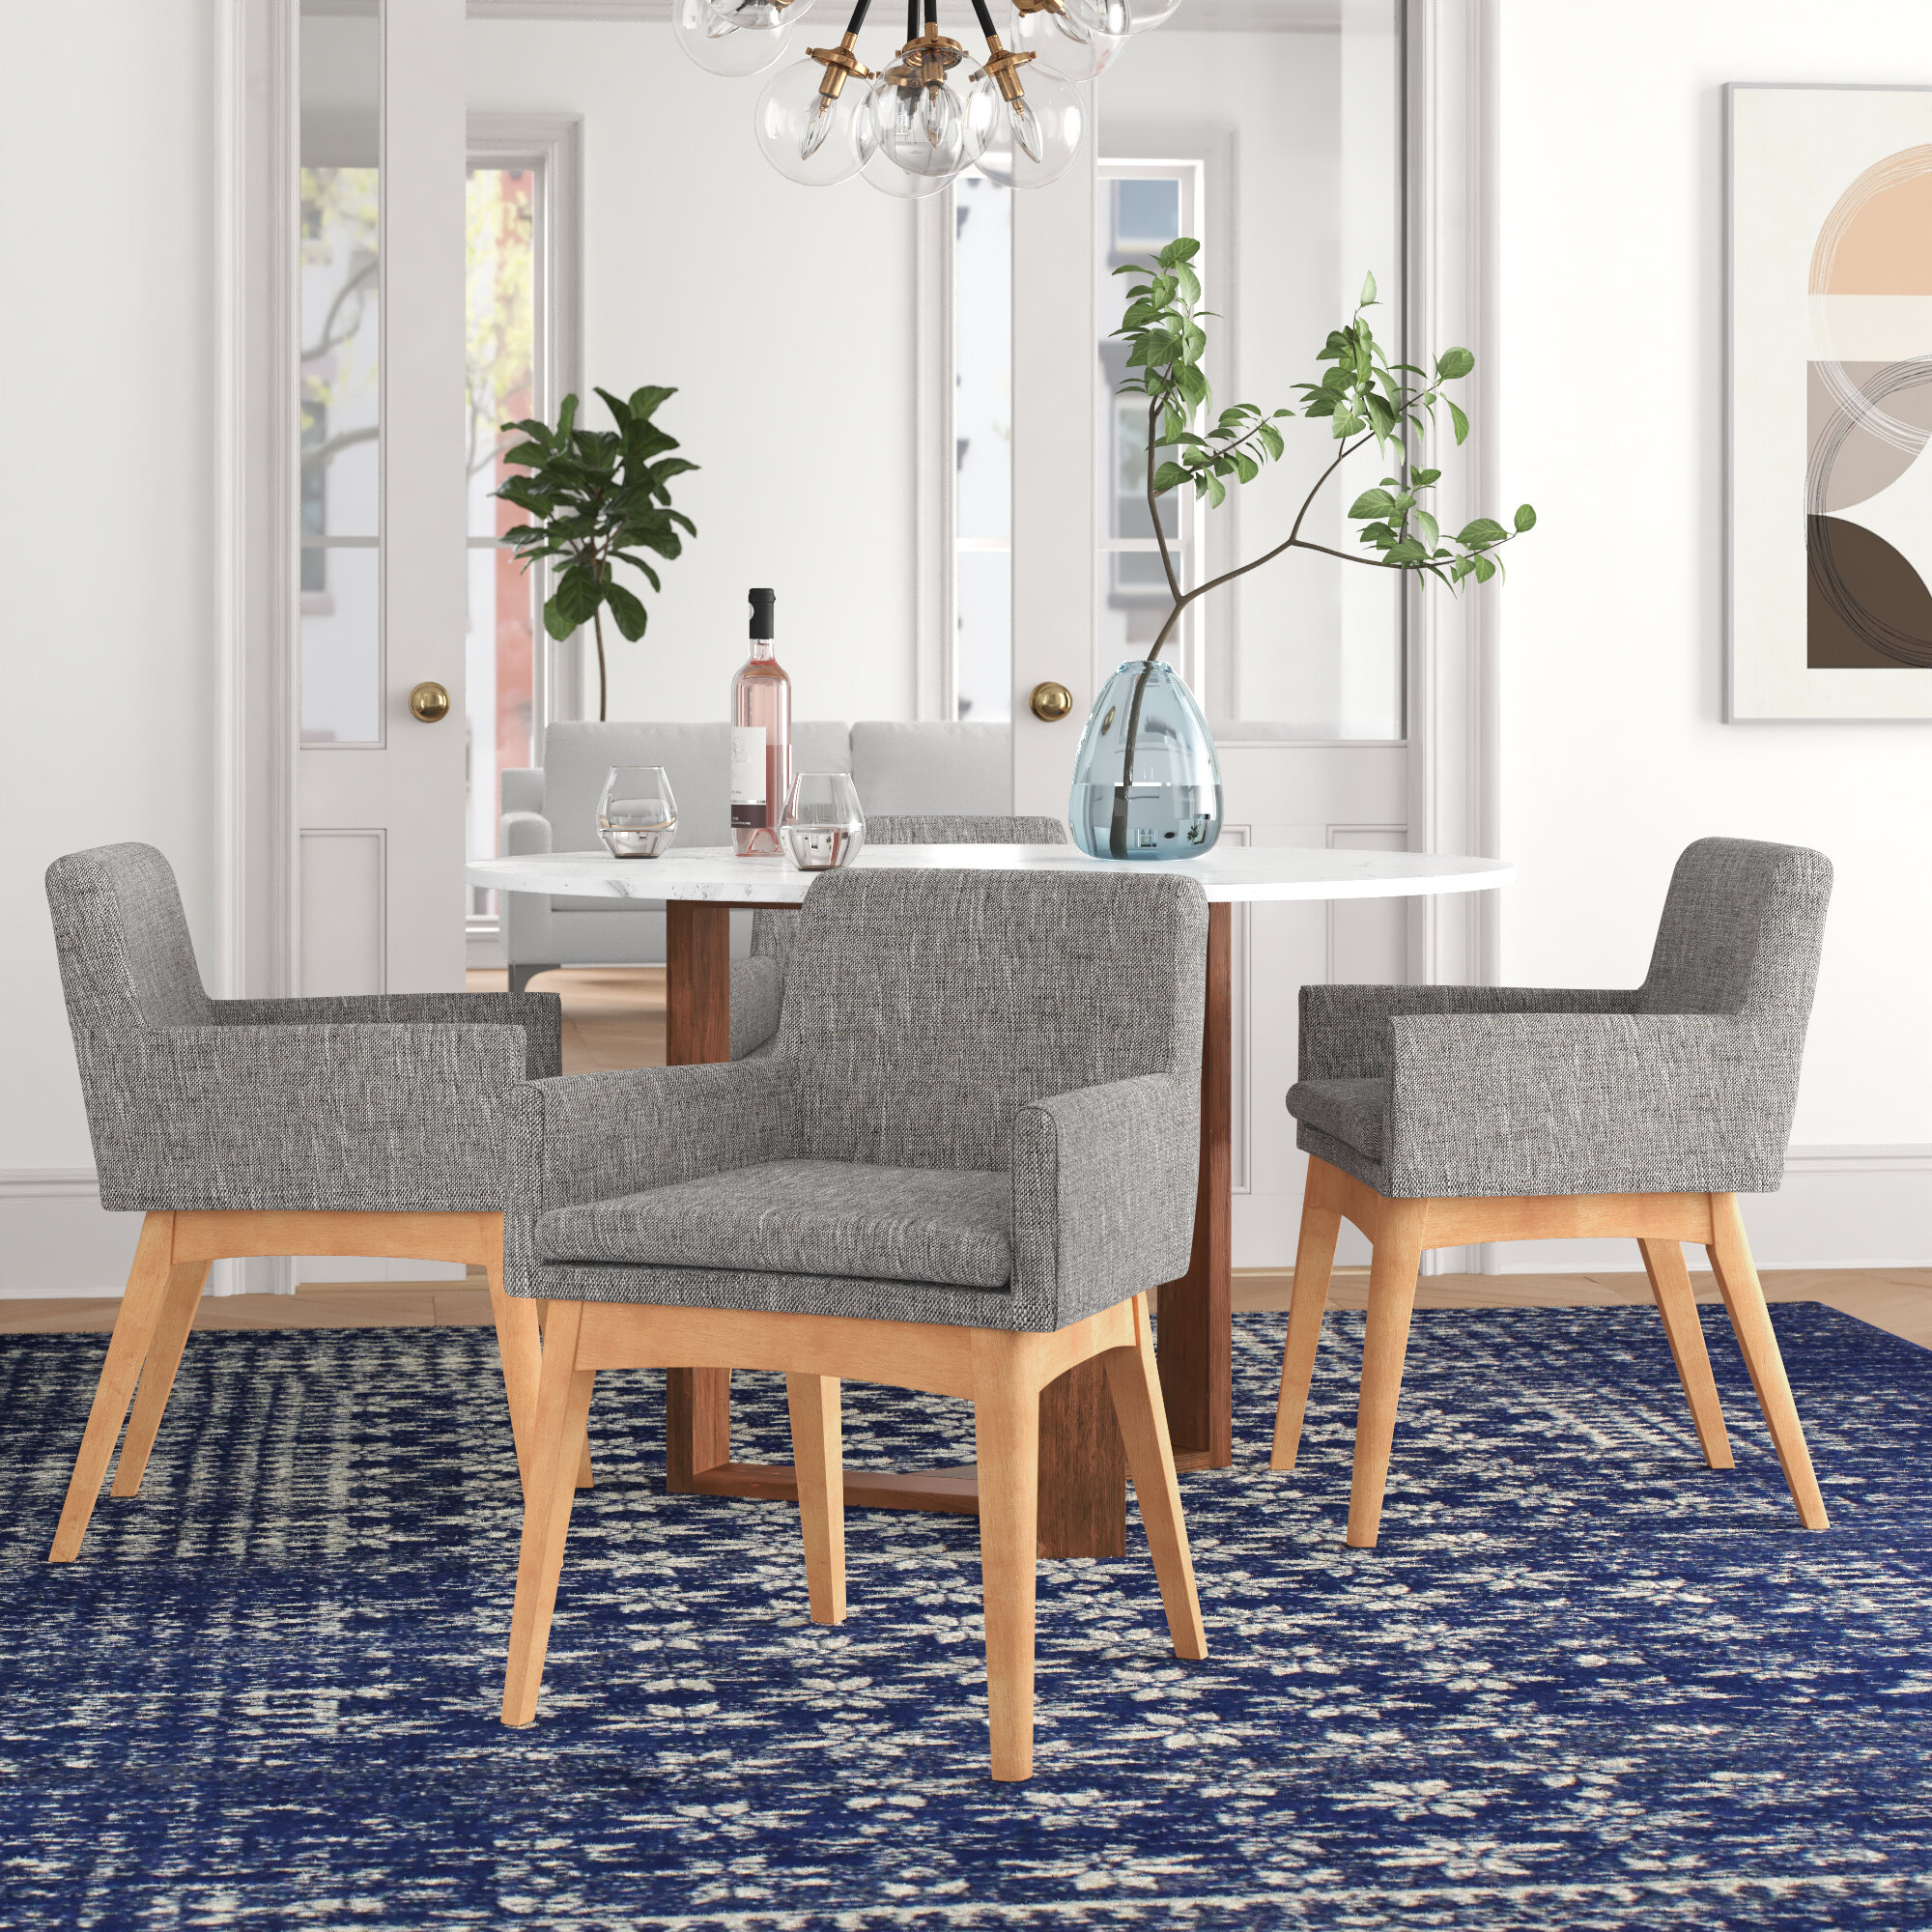 Upholstered Foundstone Kitchen Dining Chairs You Ll Love In 2021 Wayfair